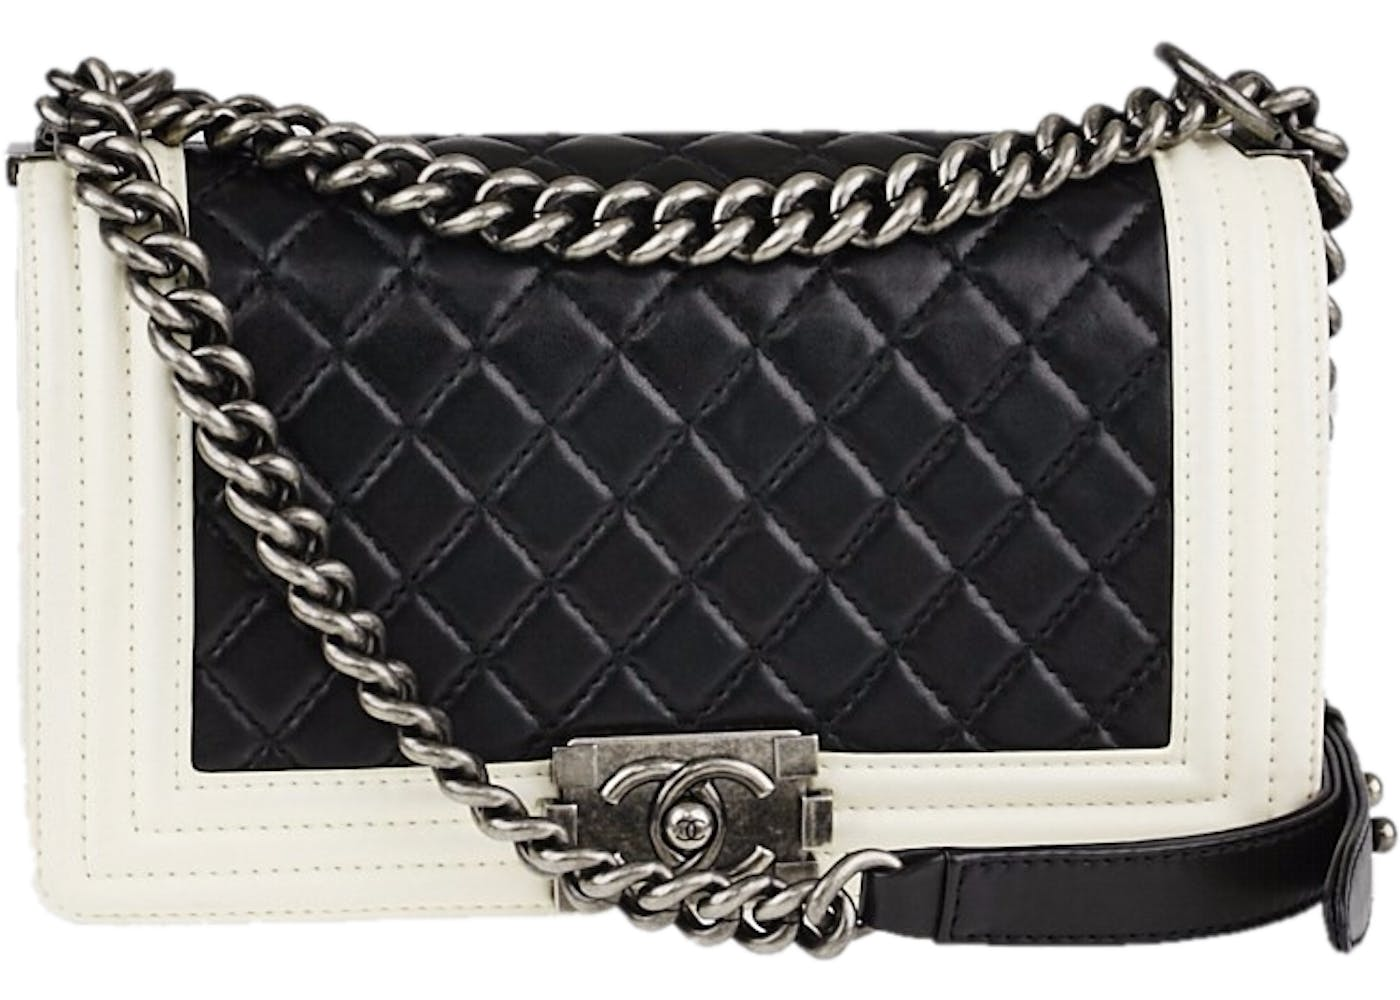 Boy Flap Quilted Medium Black/White : chanel quilted boy flap - Adamdwight.com